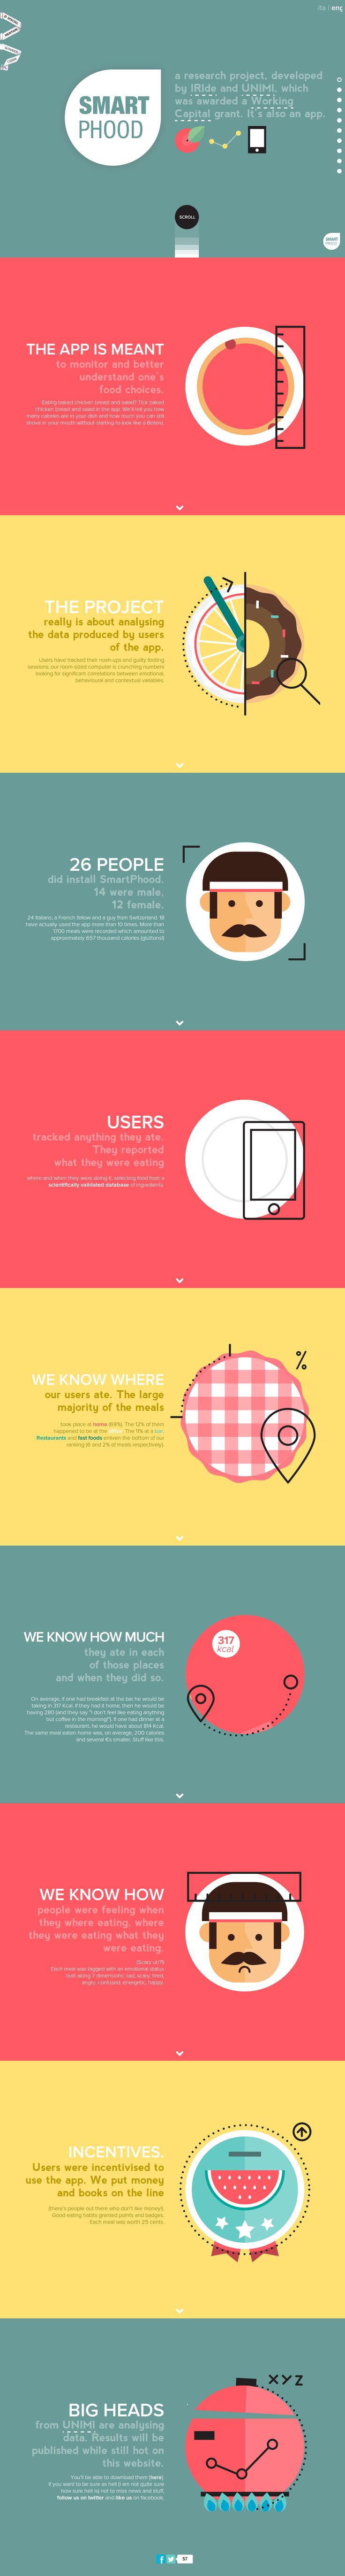 Smartphood http://www.awwwards.com/best-websites/smartphood #SinglePage #Illustration #Animation #HTML5 #Colorful #Scroll